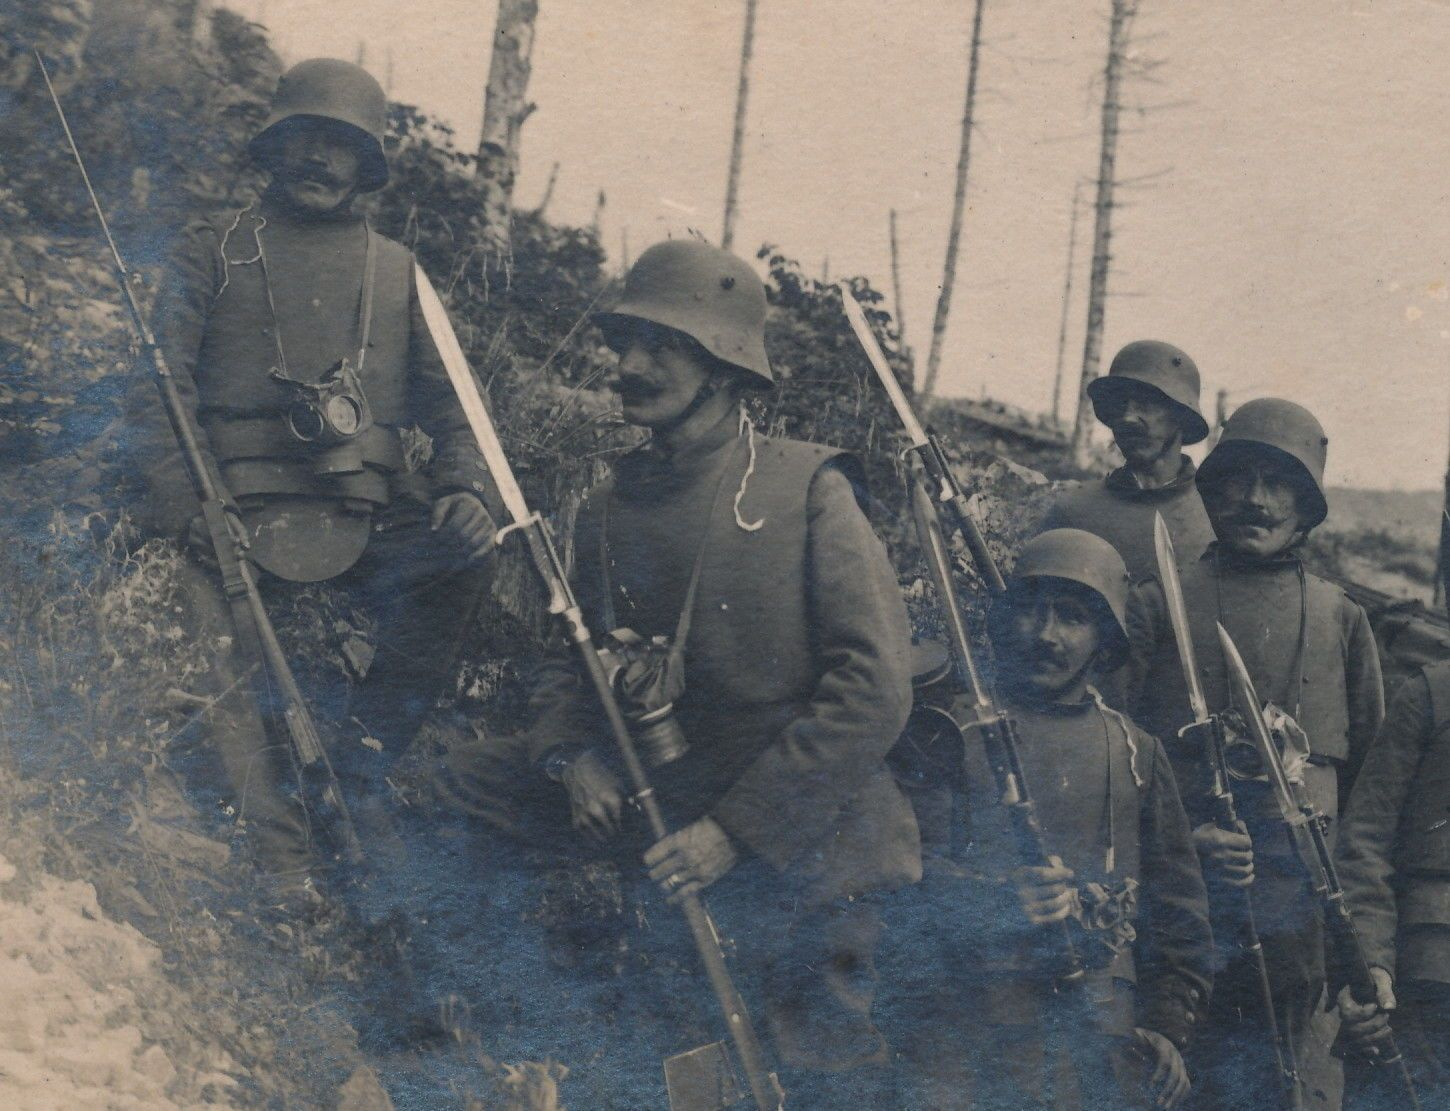 Late war Germans with body armour.